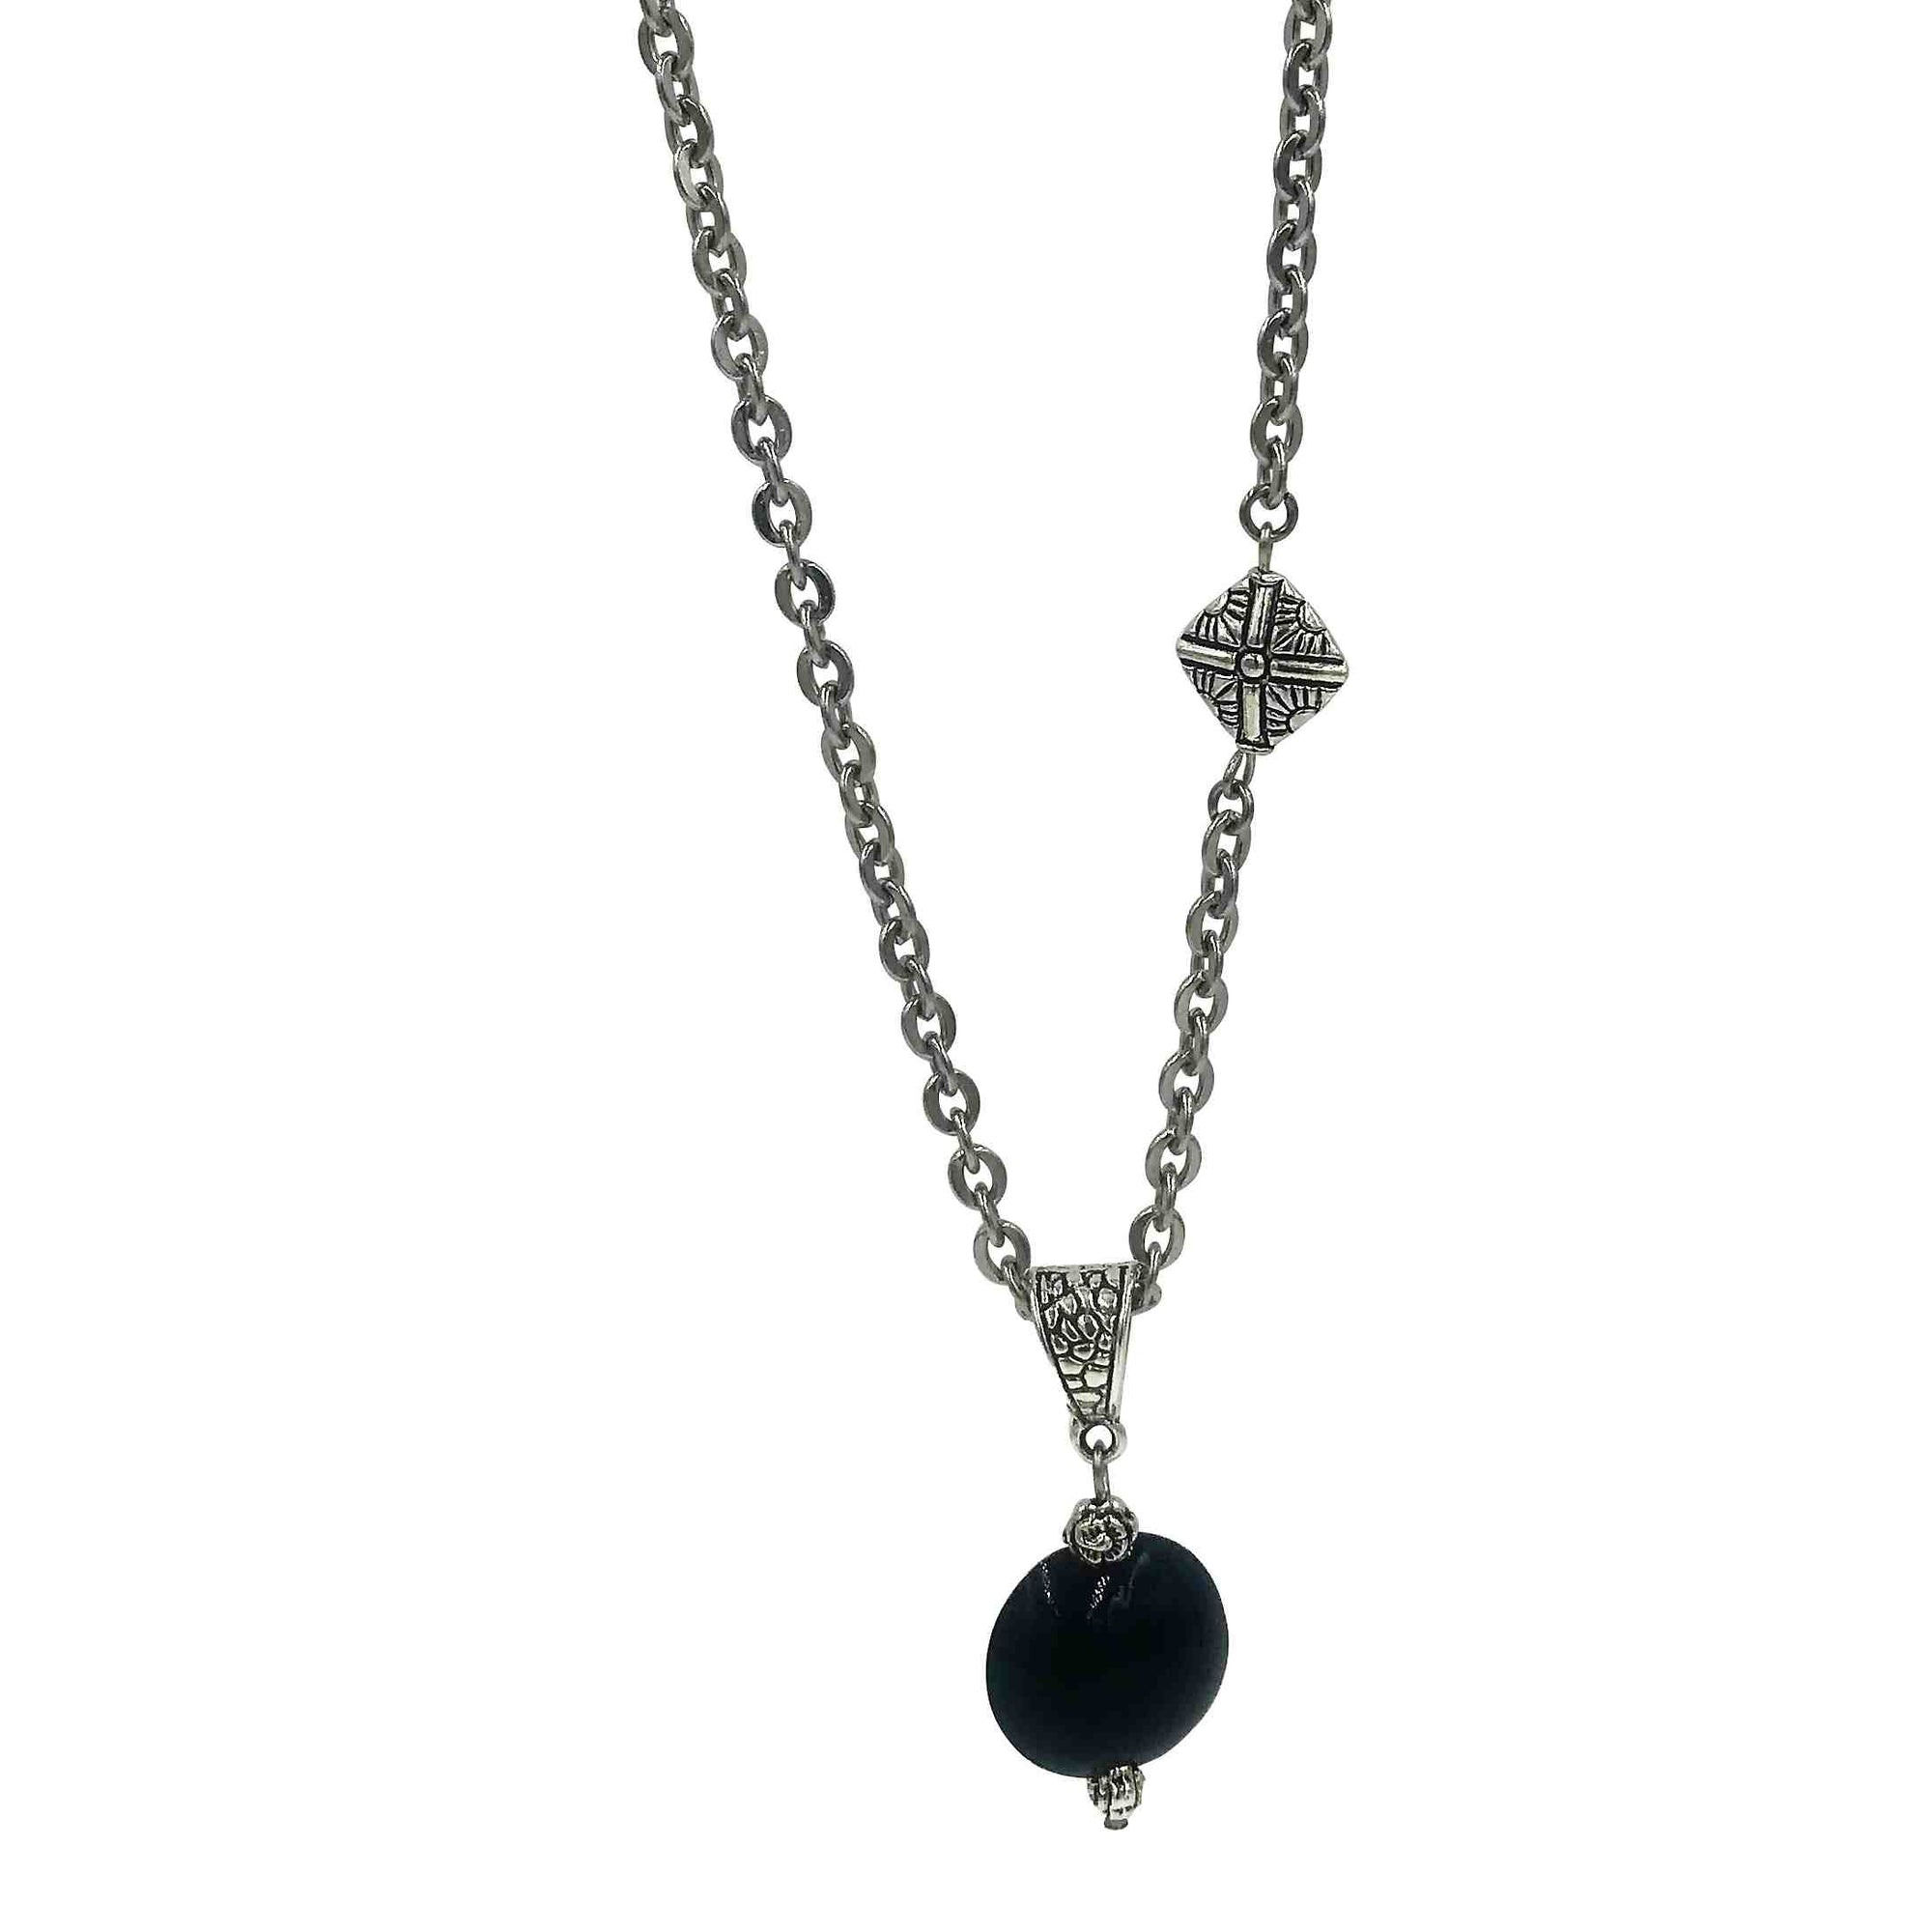 Midnight Blue Golem Pendant Asymmetrical Necklace with Silver Beads-Necklaces- Creative Jewelry by Marcia